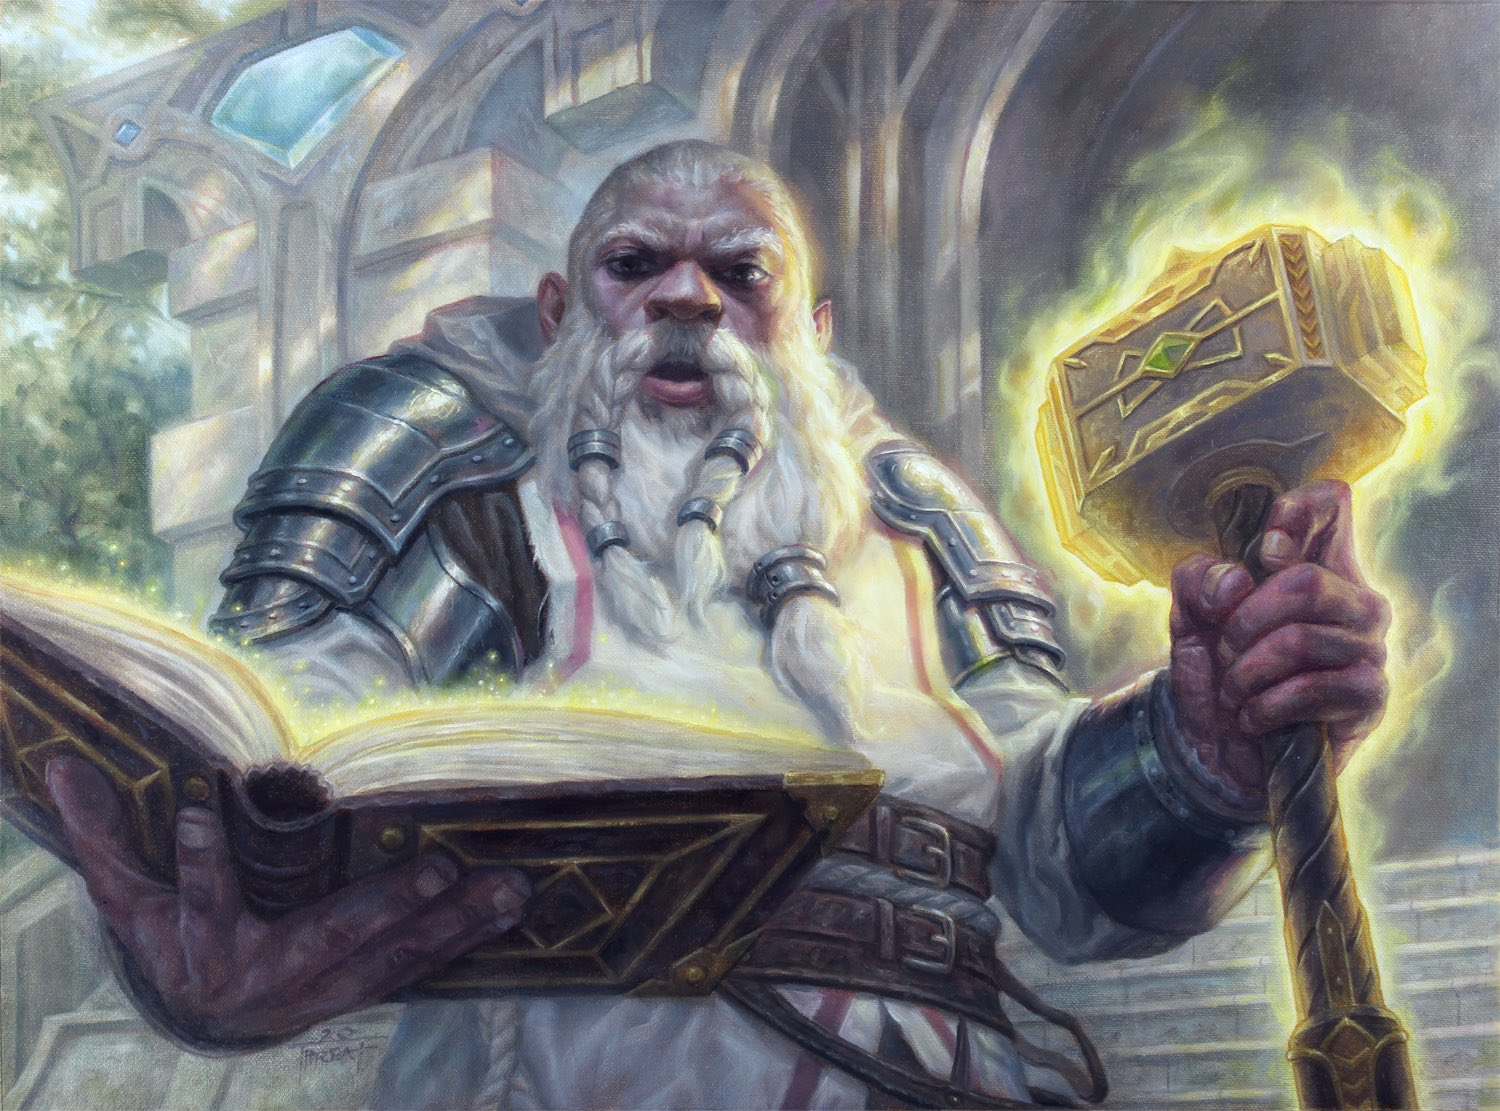 Advetures In The Forgotten Realms Limited Review: White